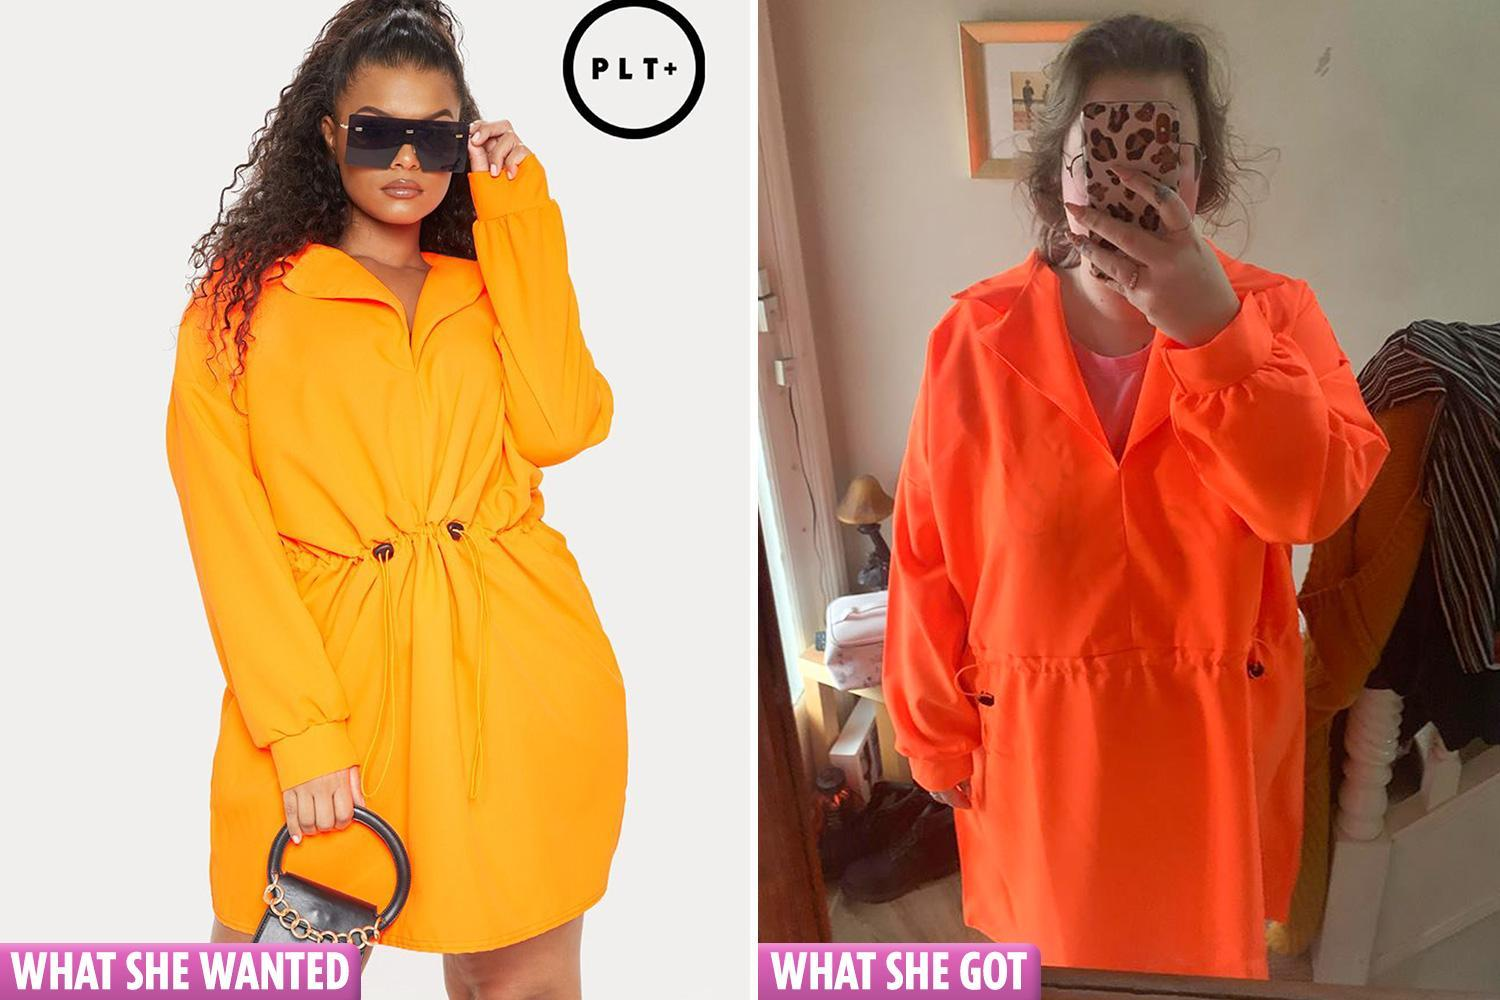 Student gutted after the PrettyLittleThing dress she ordered online actually looks like a high-vis tent